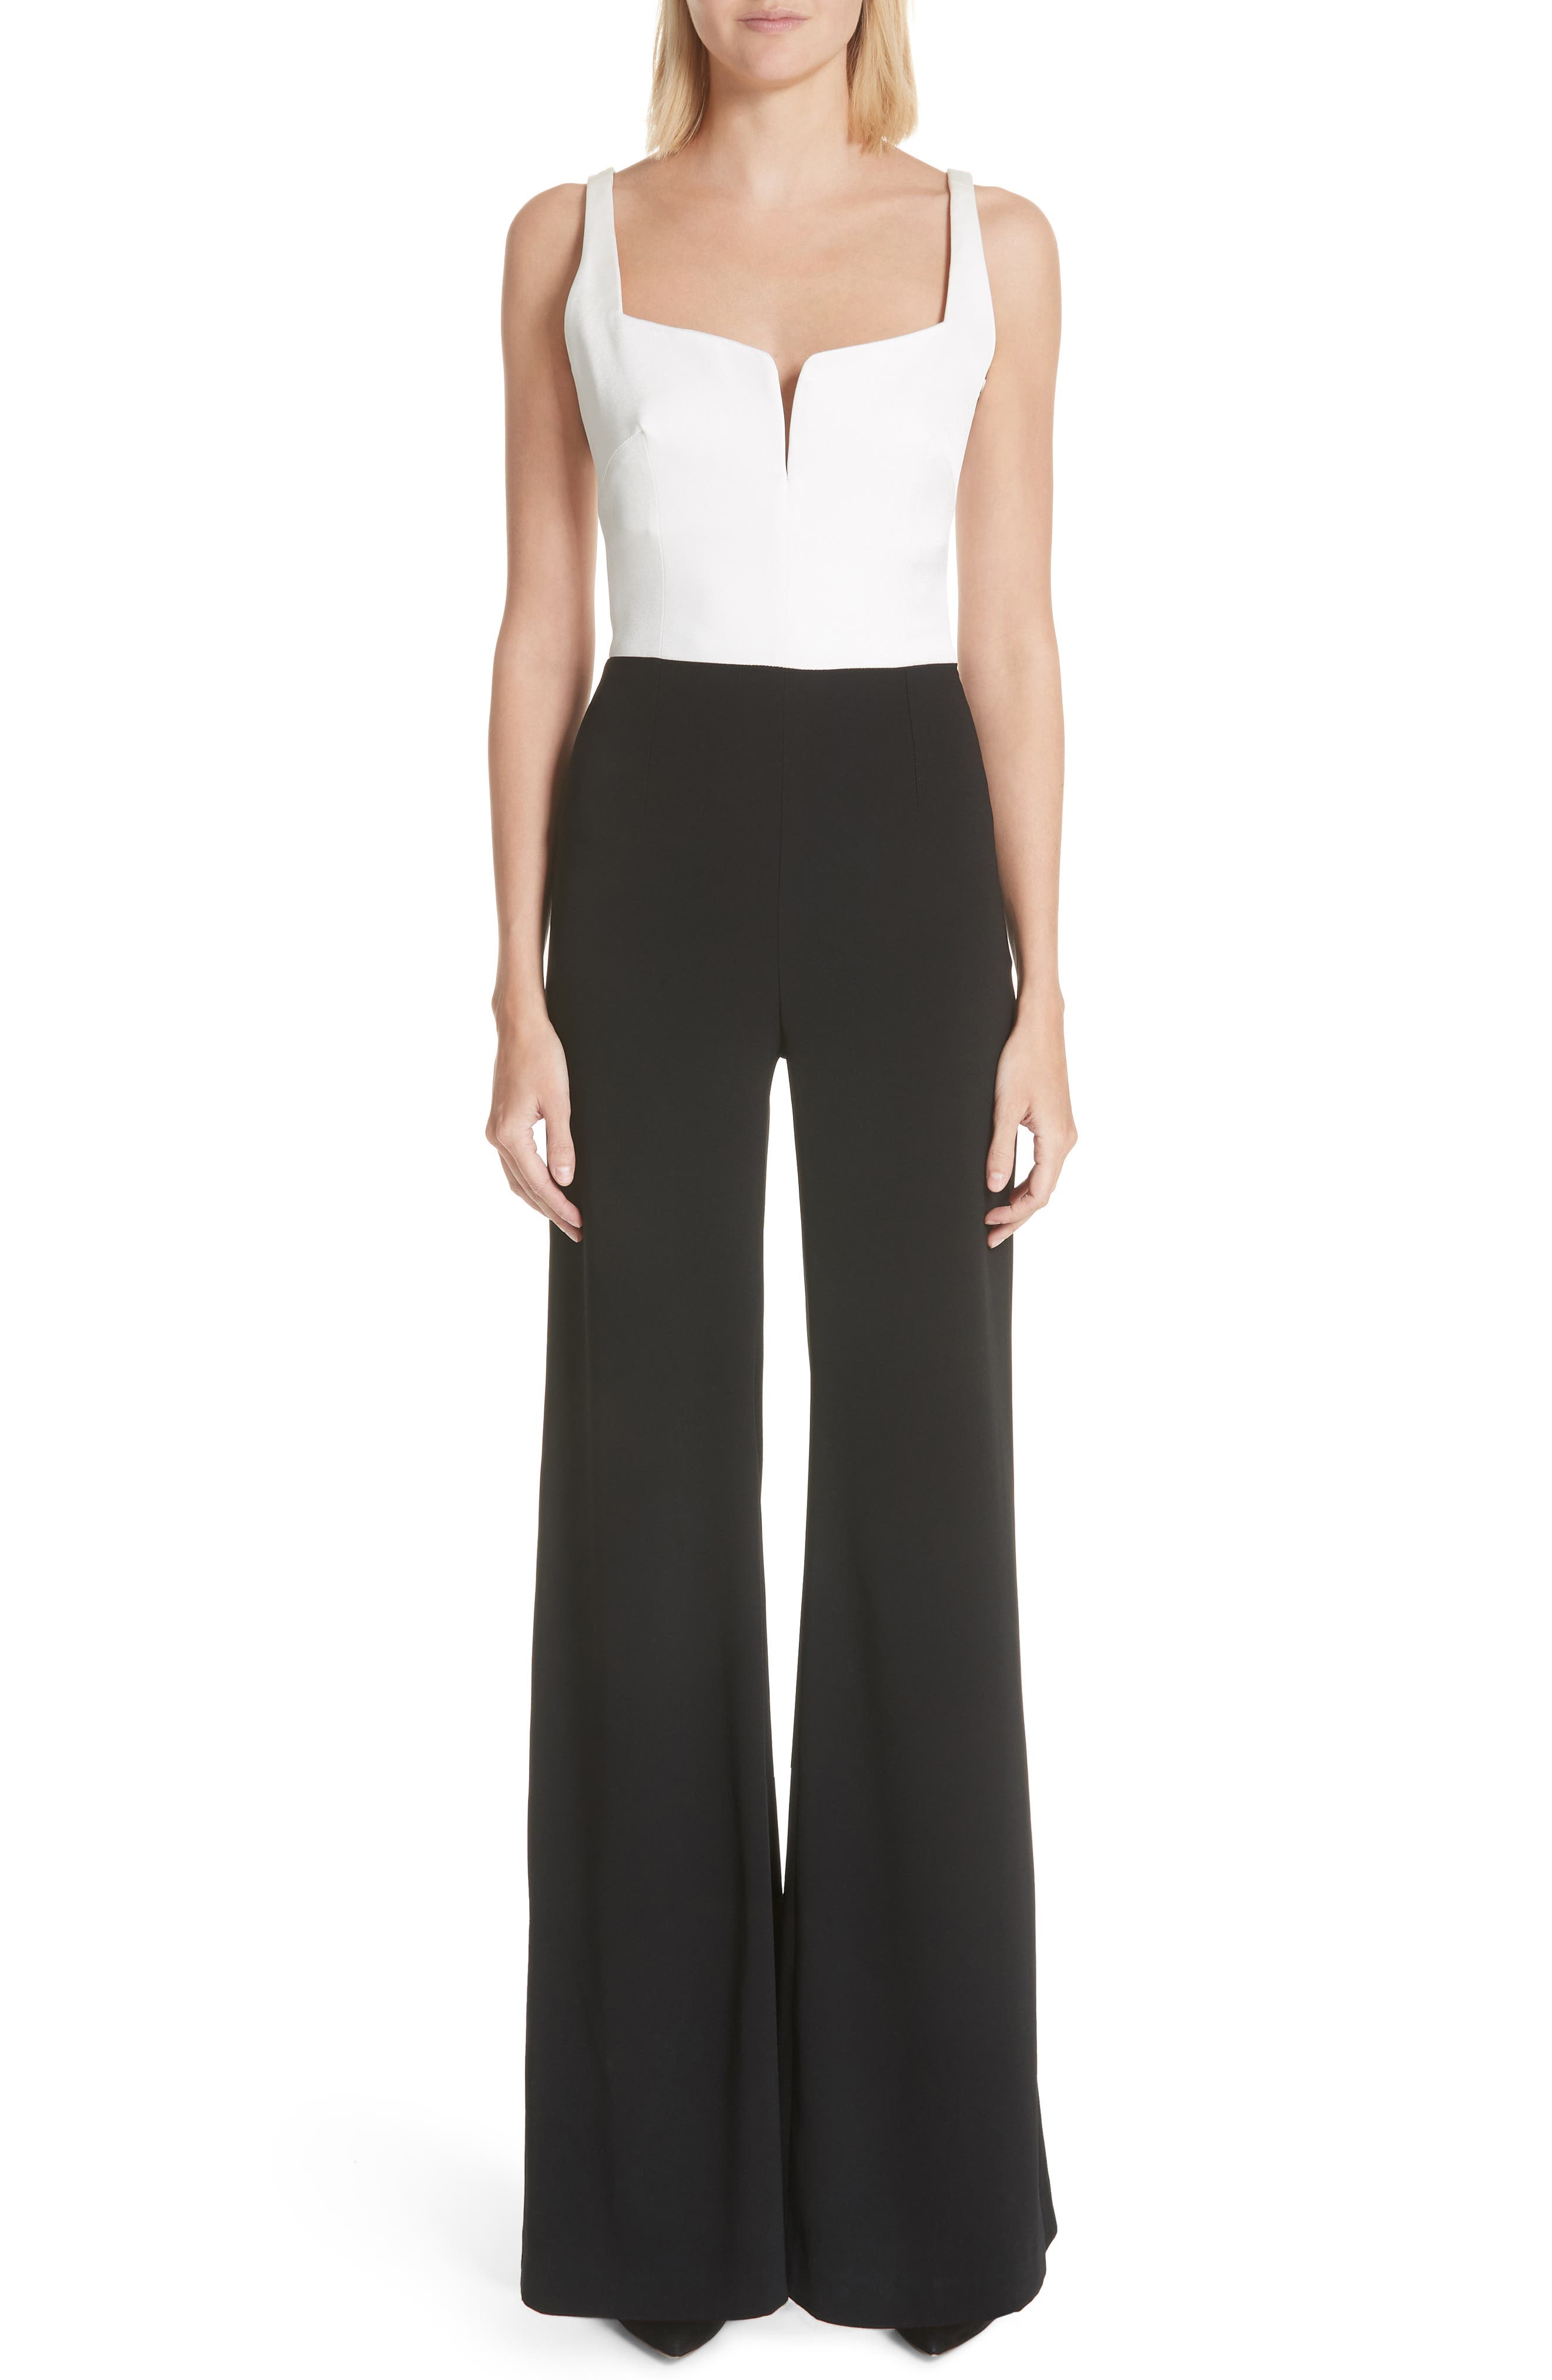 GALVAN Eclipse Satin & Matte Crepe Jumpsuit, Main, color, WHITE/ BLACK